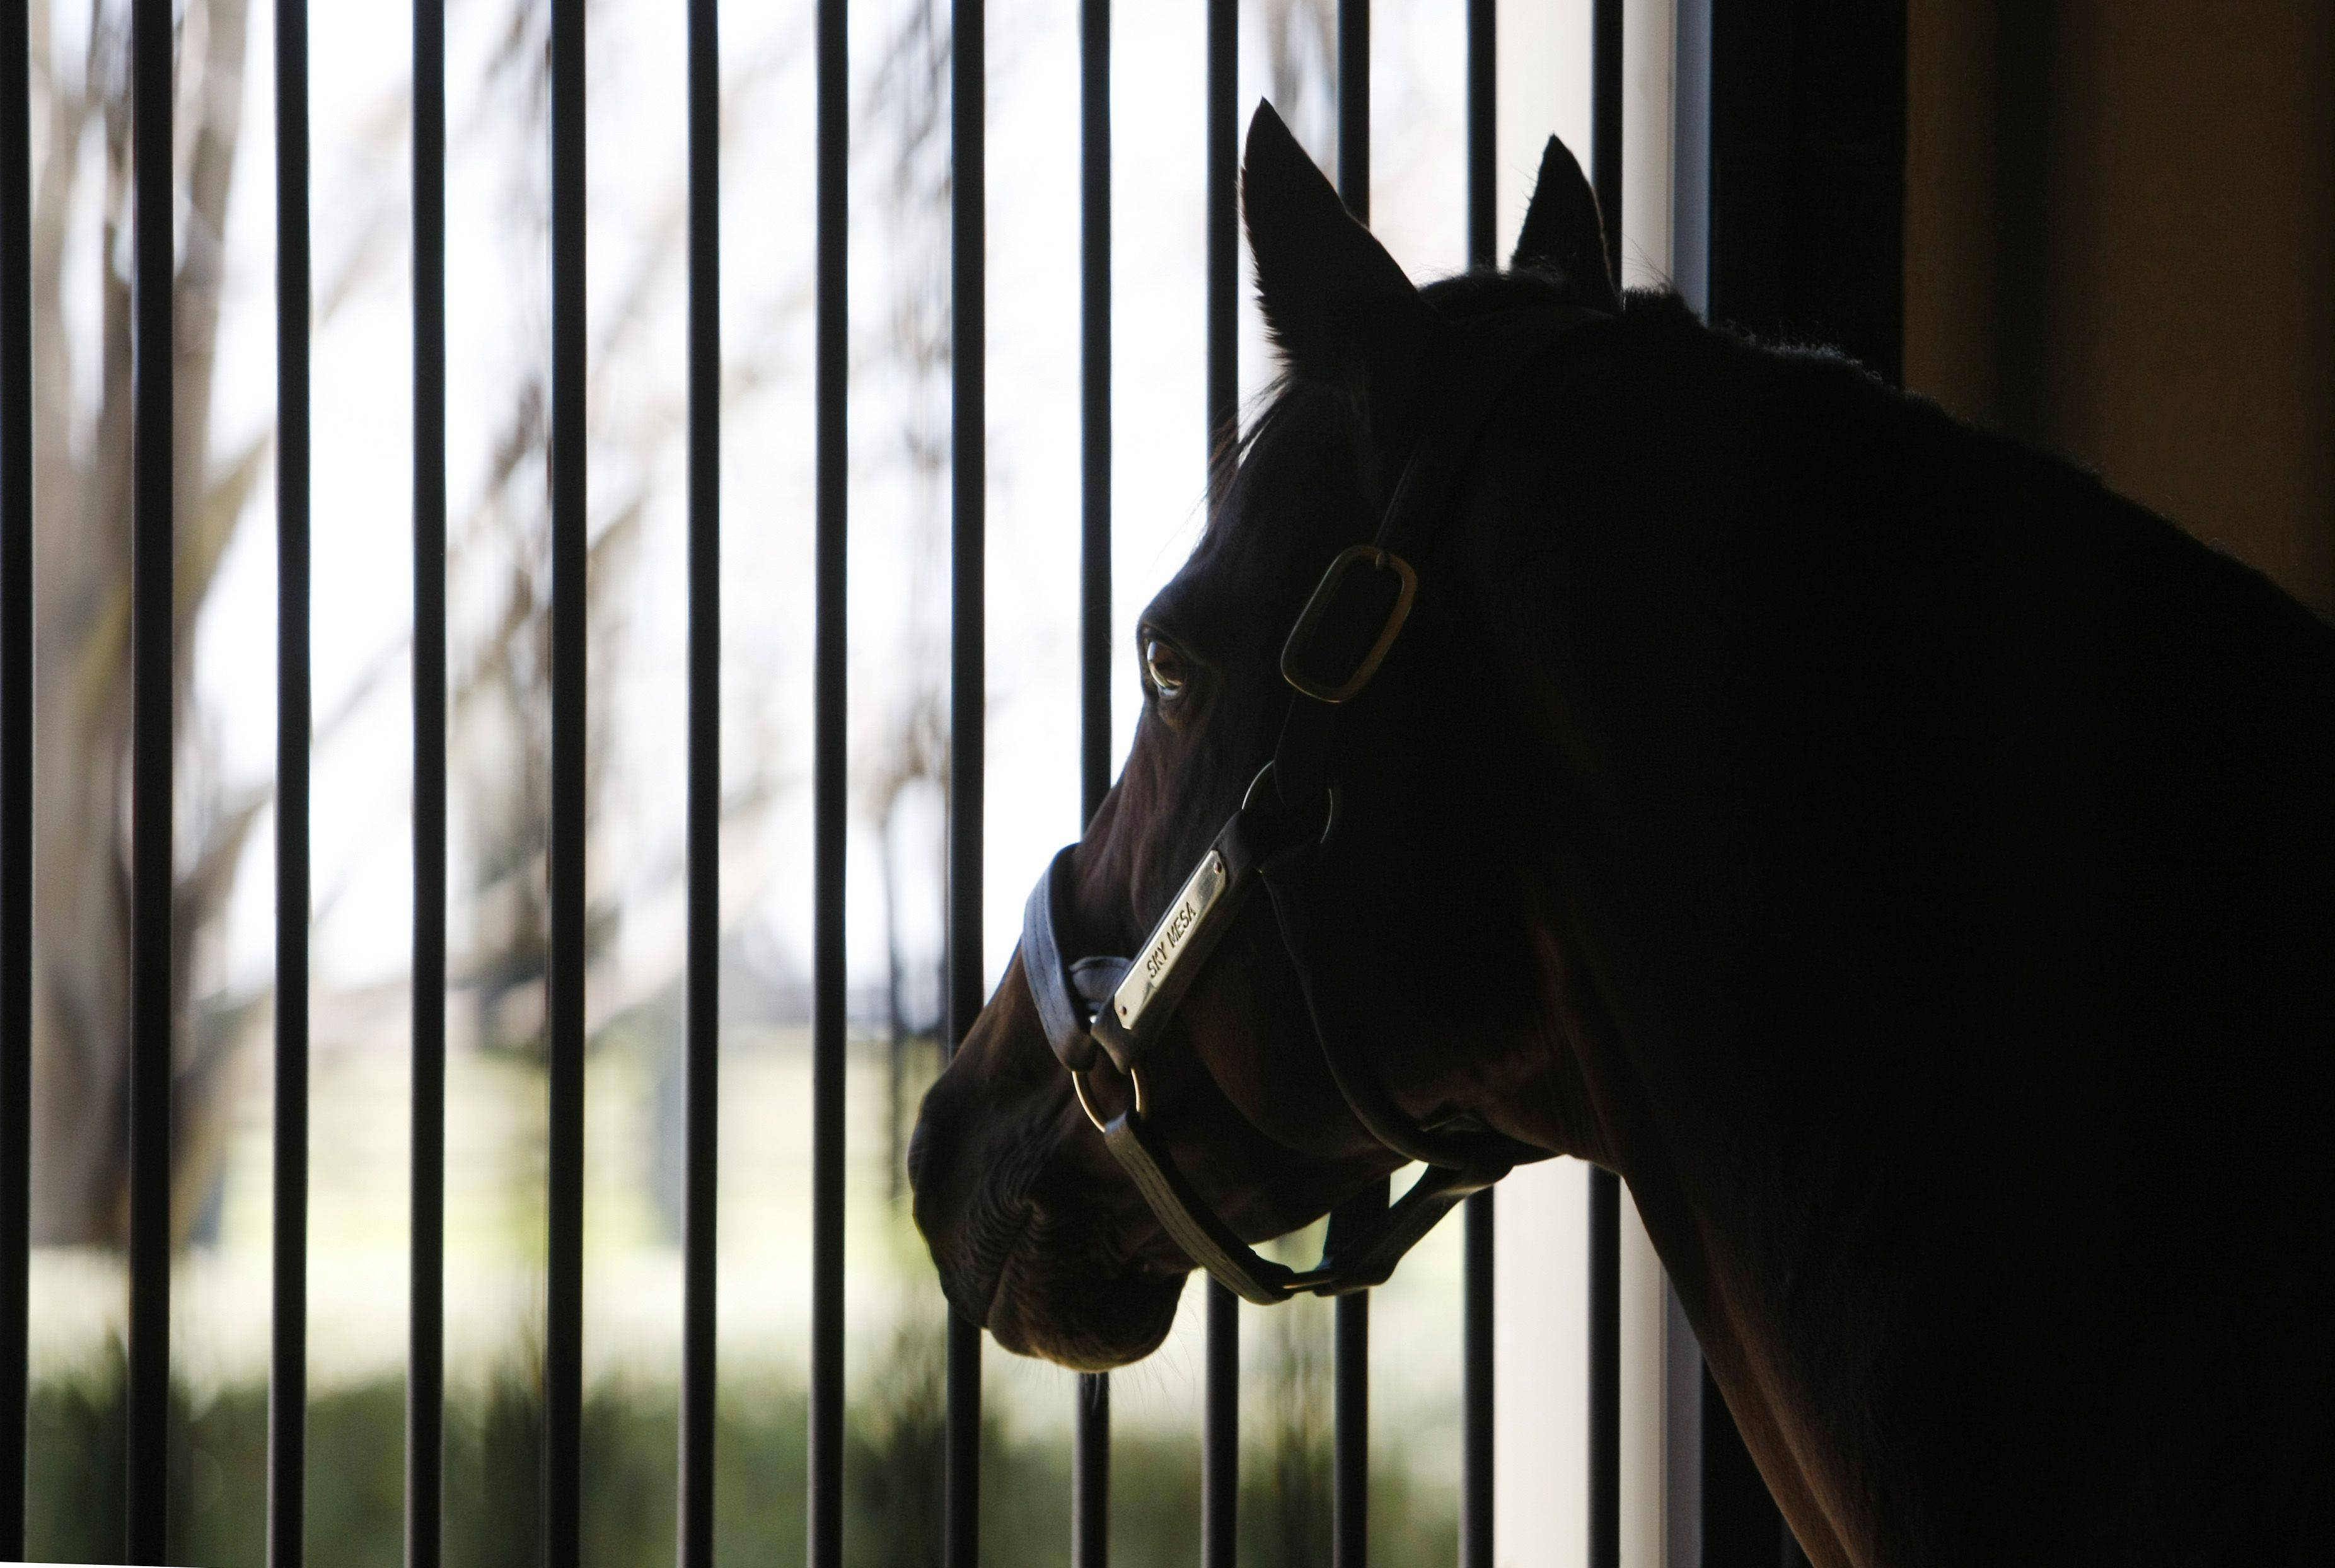 Sky Mesa looks out the window of his stall.